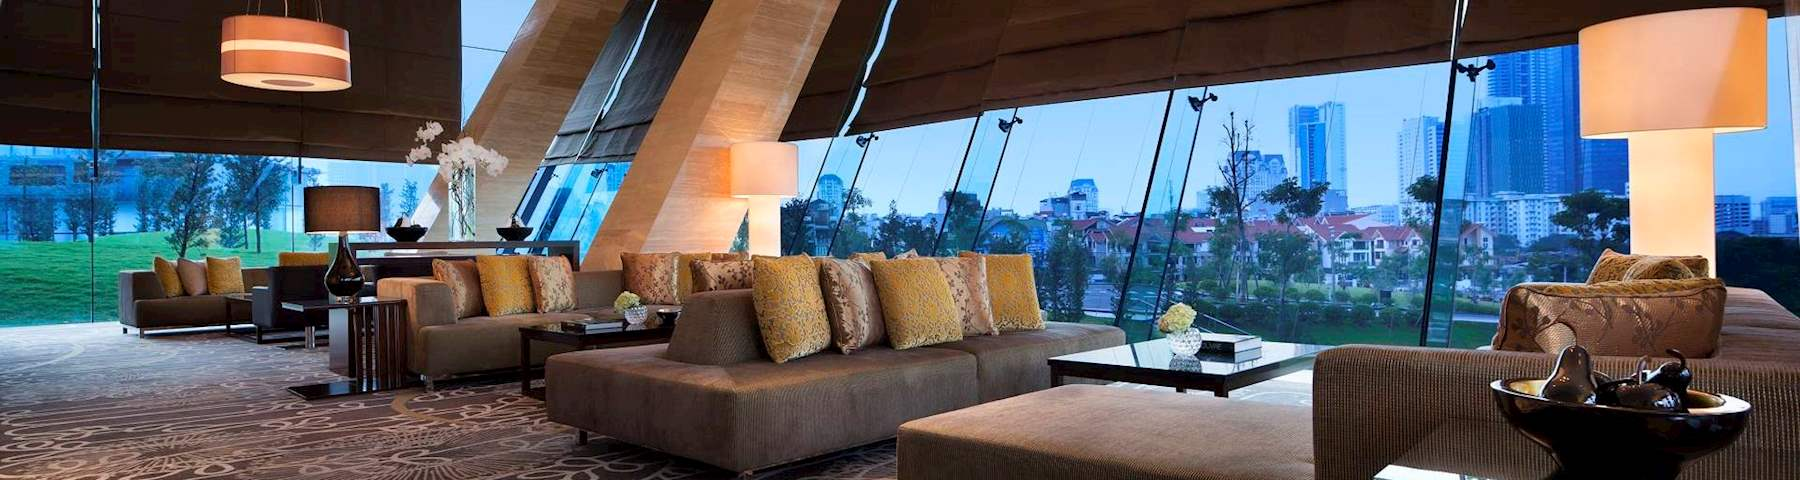 The Lounge - Best 5 star cafe in Hanoi